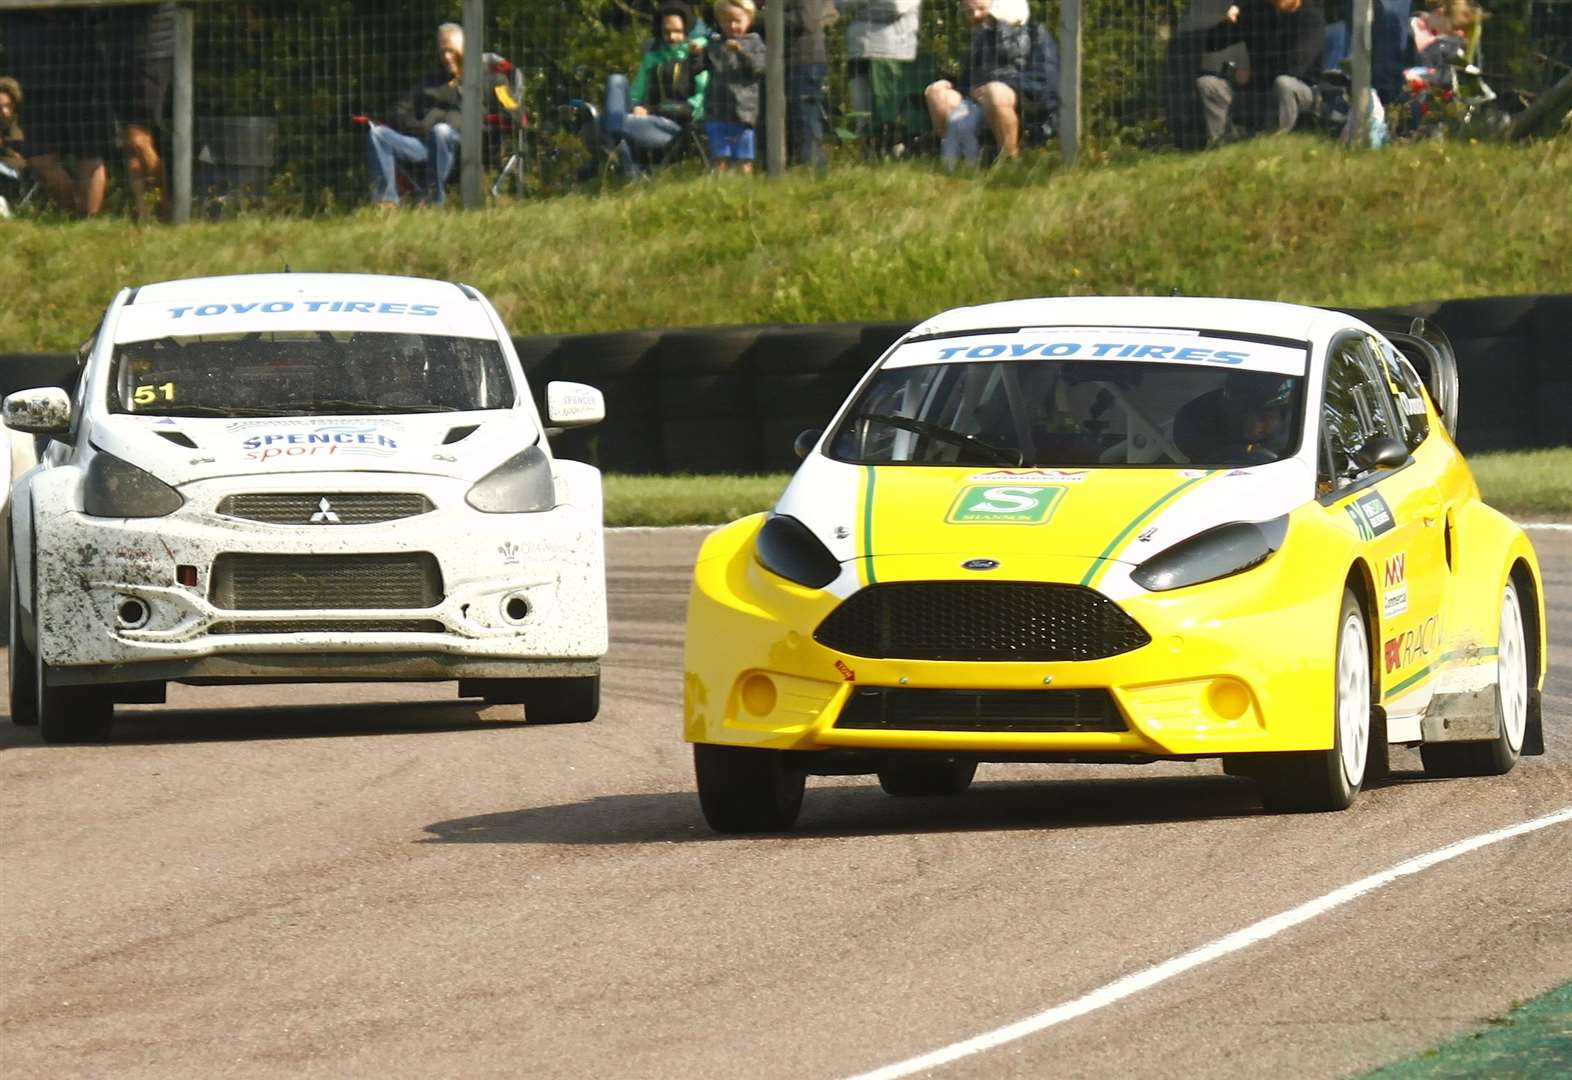 Easter thrills and spills at Lydden